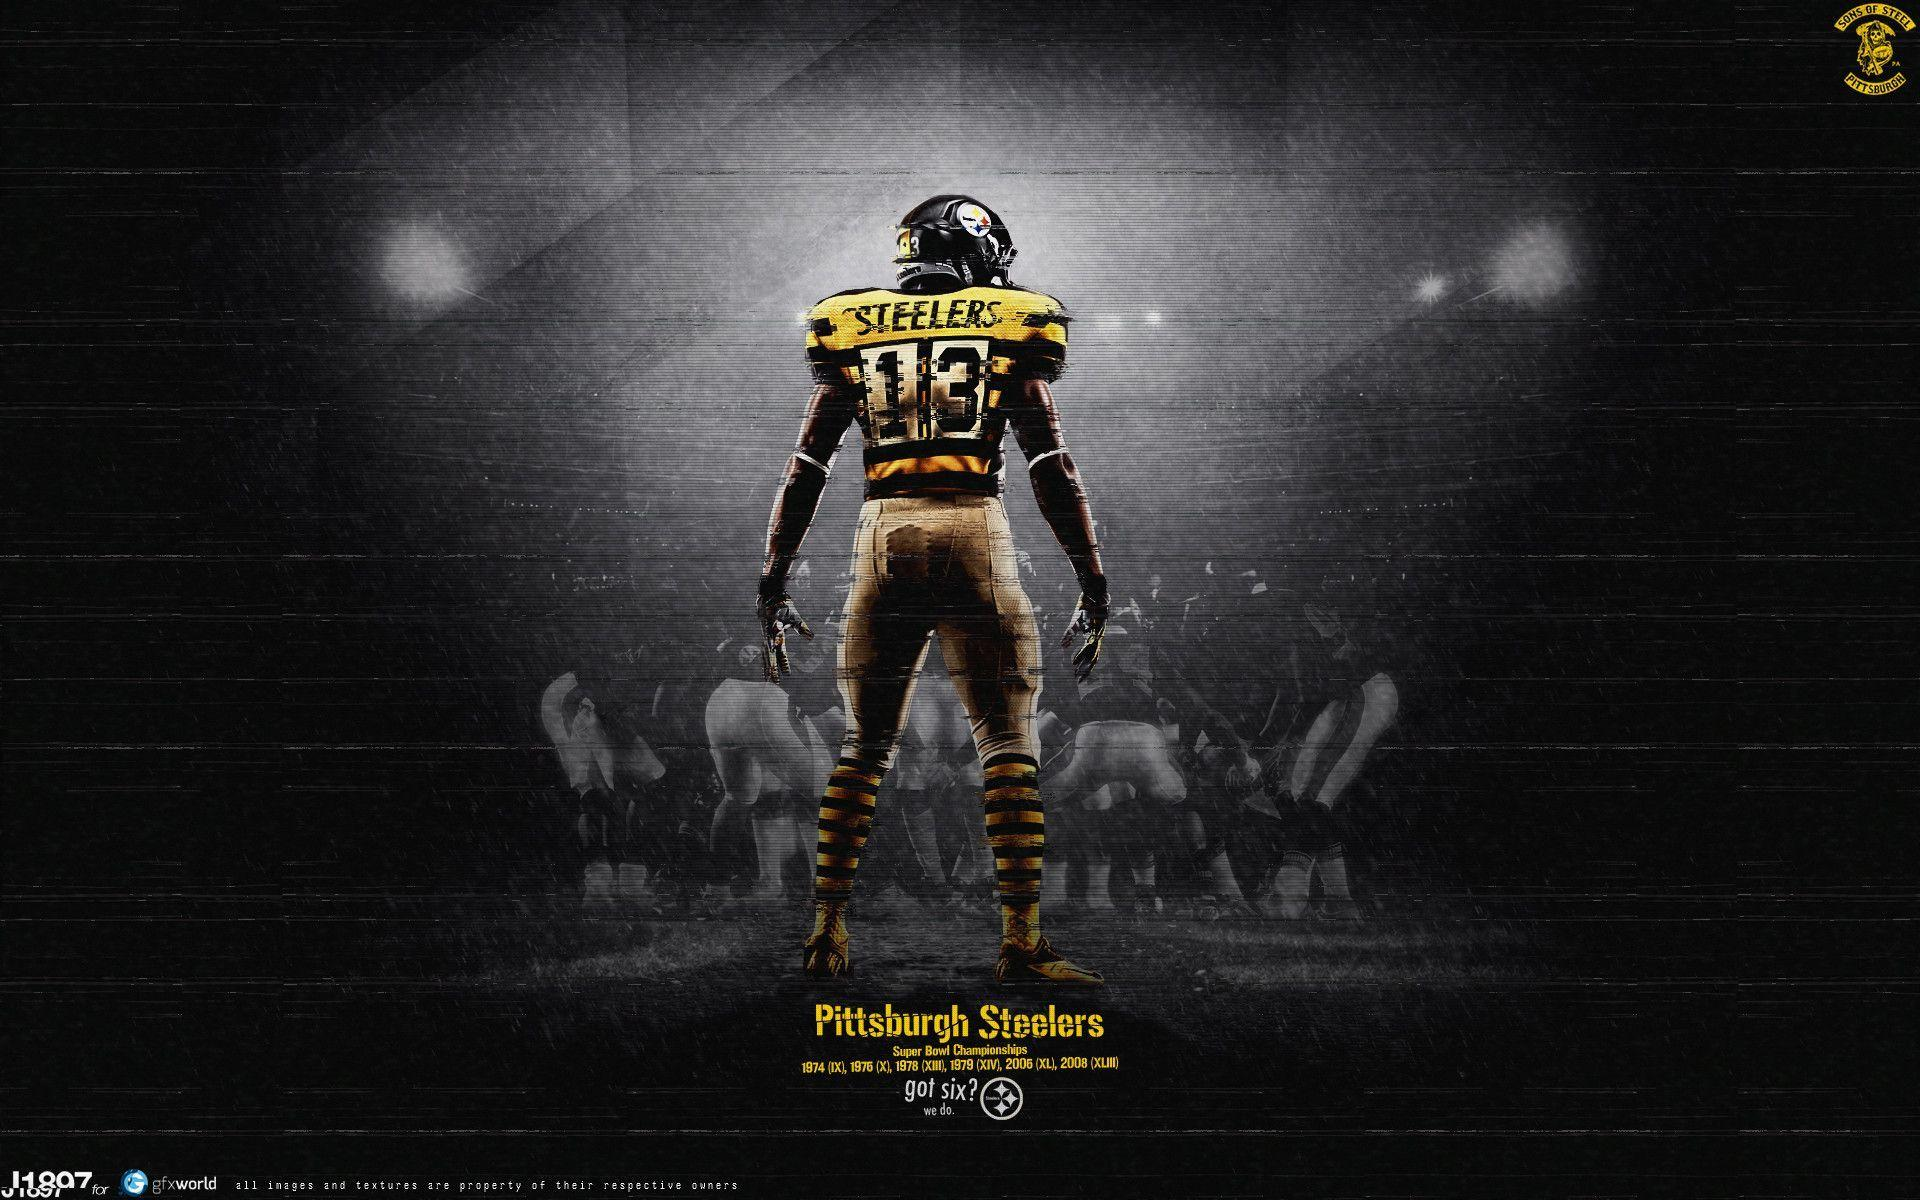 Pittsburgh Steelers 2018 Wallpapers - Wallpaper Cave bdeff059f